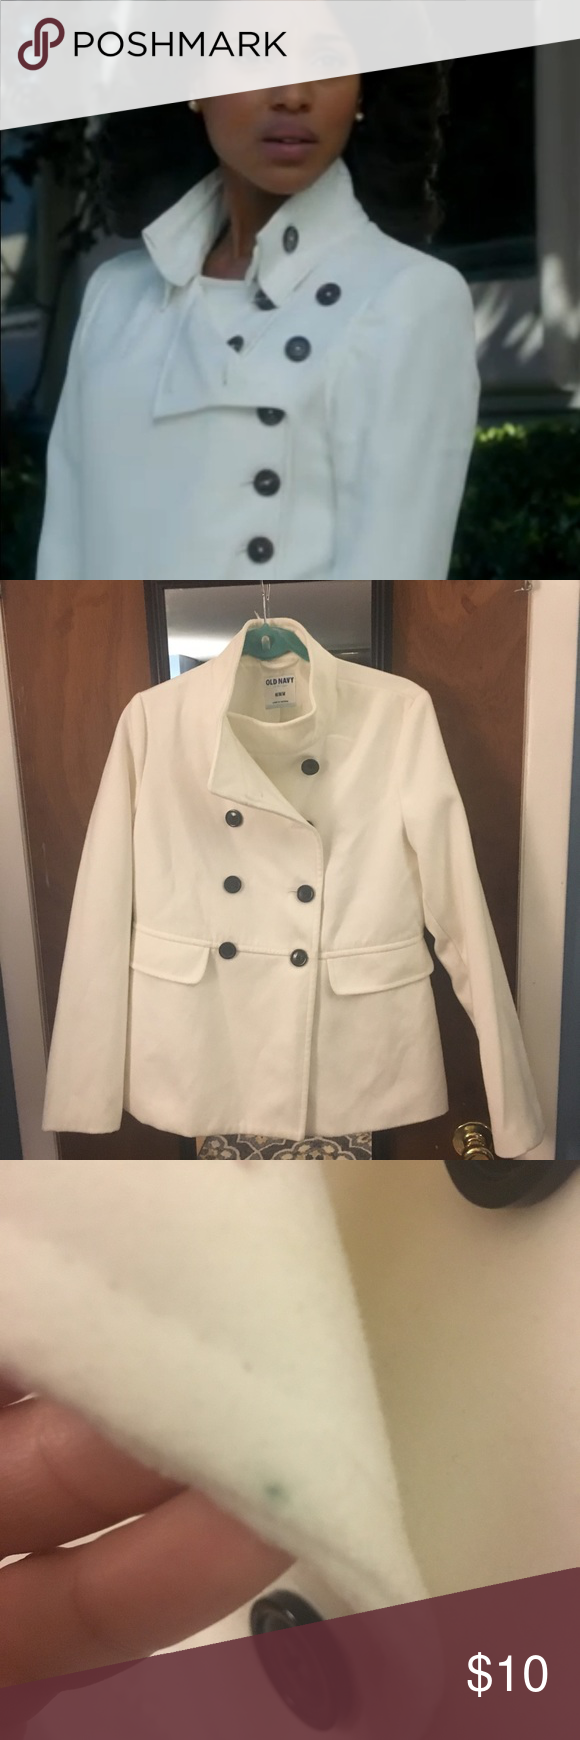 Olivia pope inspired white coat old navy Very Olivia-esque one small stain on inside of the jacket pictured - some slight discoloration last pic inside jacket from jeans - nothing on the outside ! Old Navy Jackets & Coats